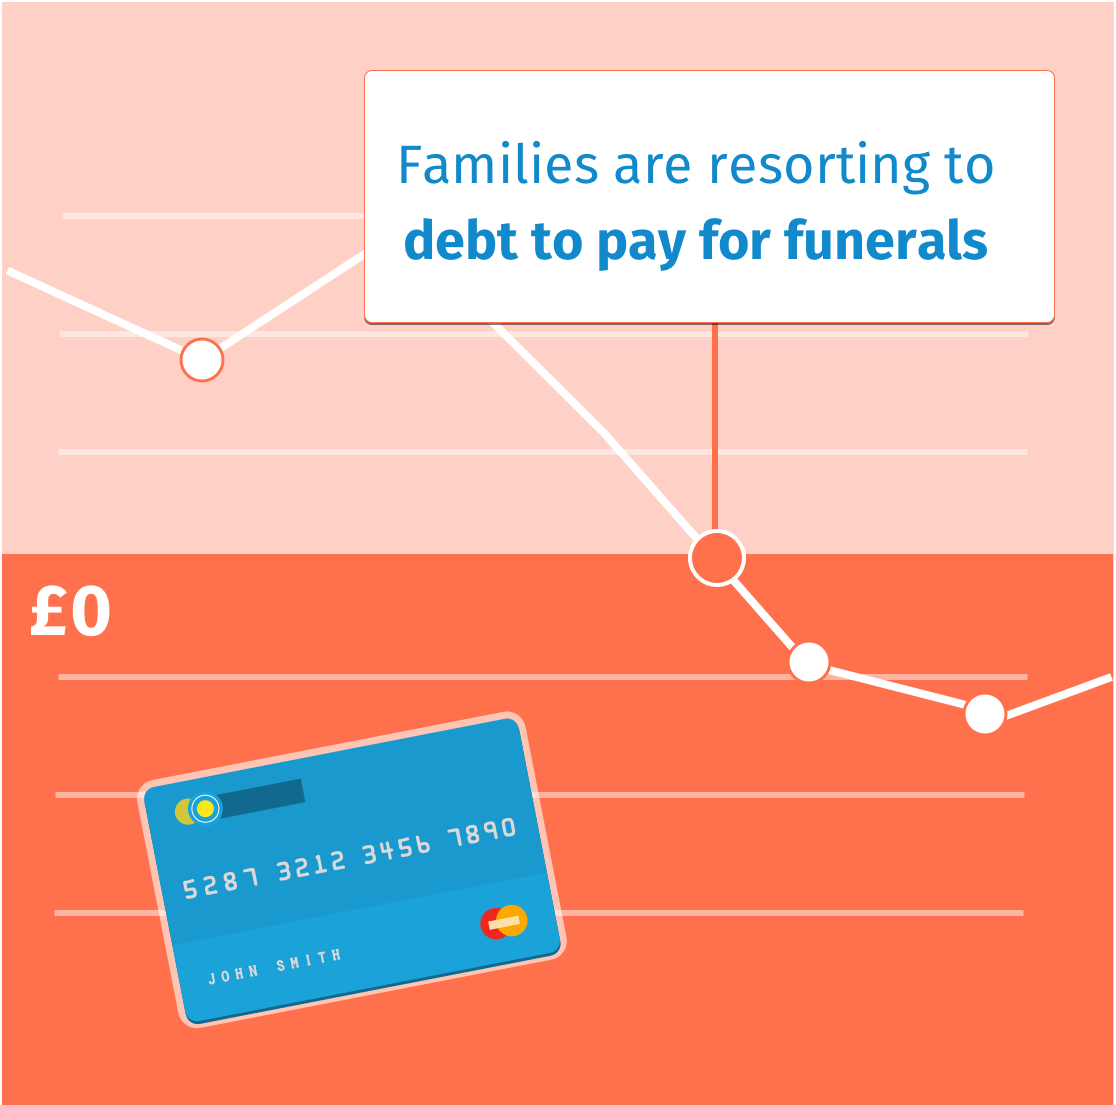 Families are taking on debt to pay for funerals